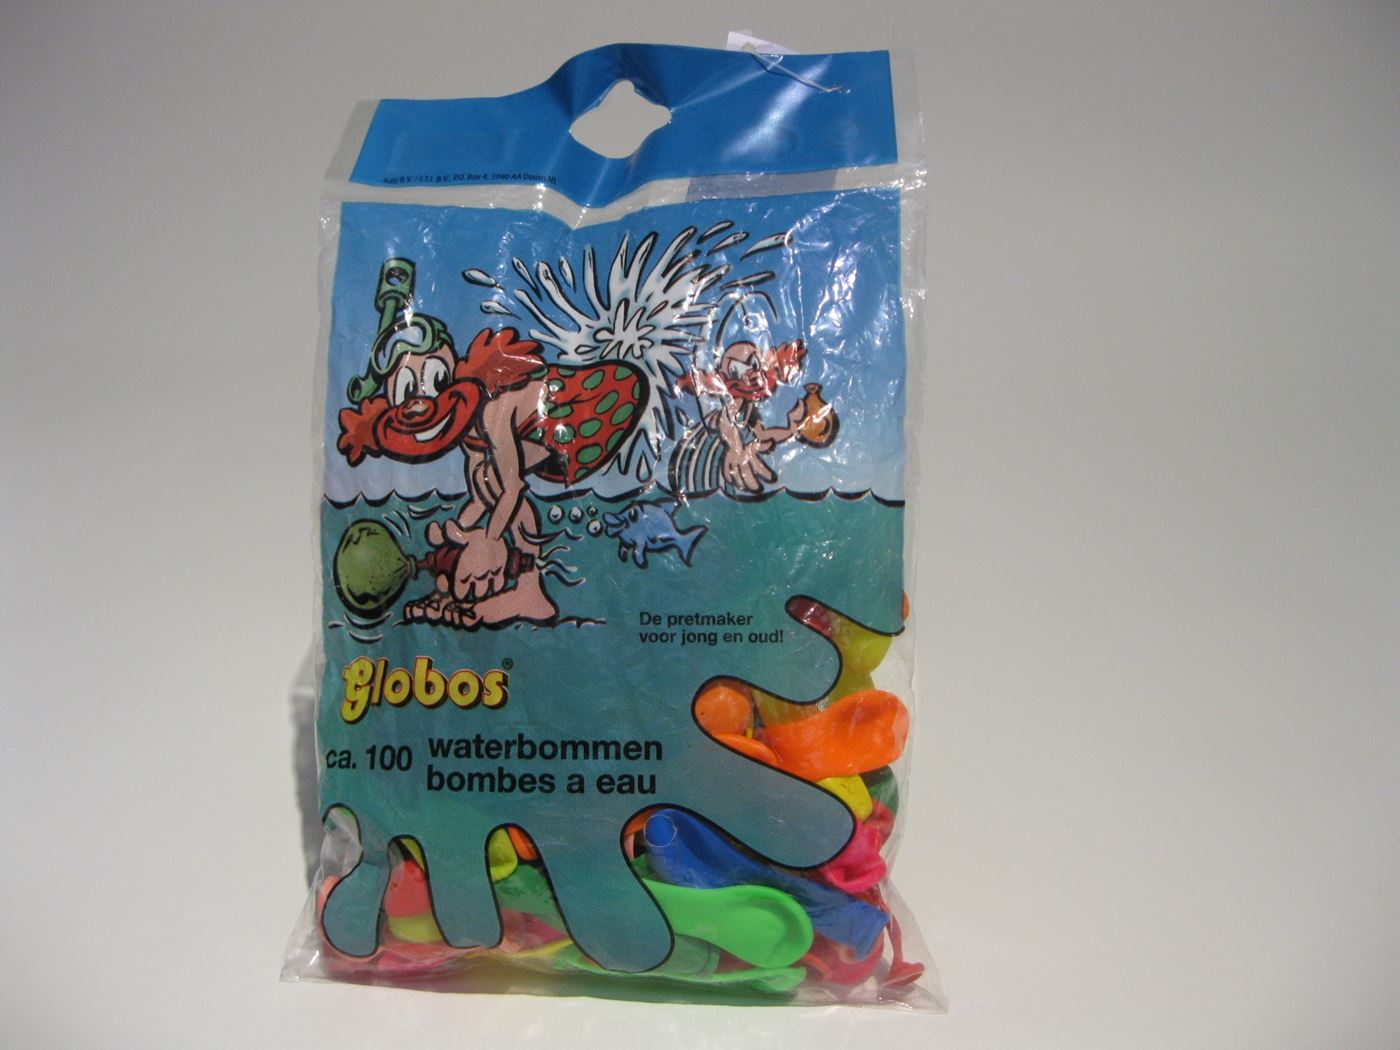 globos - waterbommen (100sts)